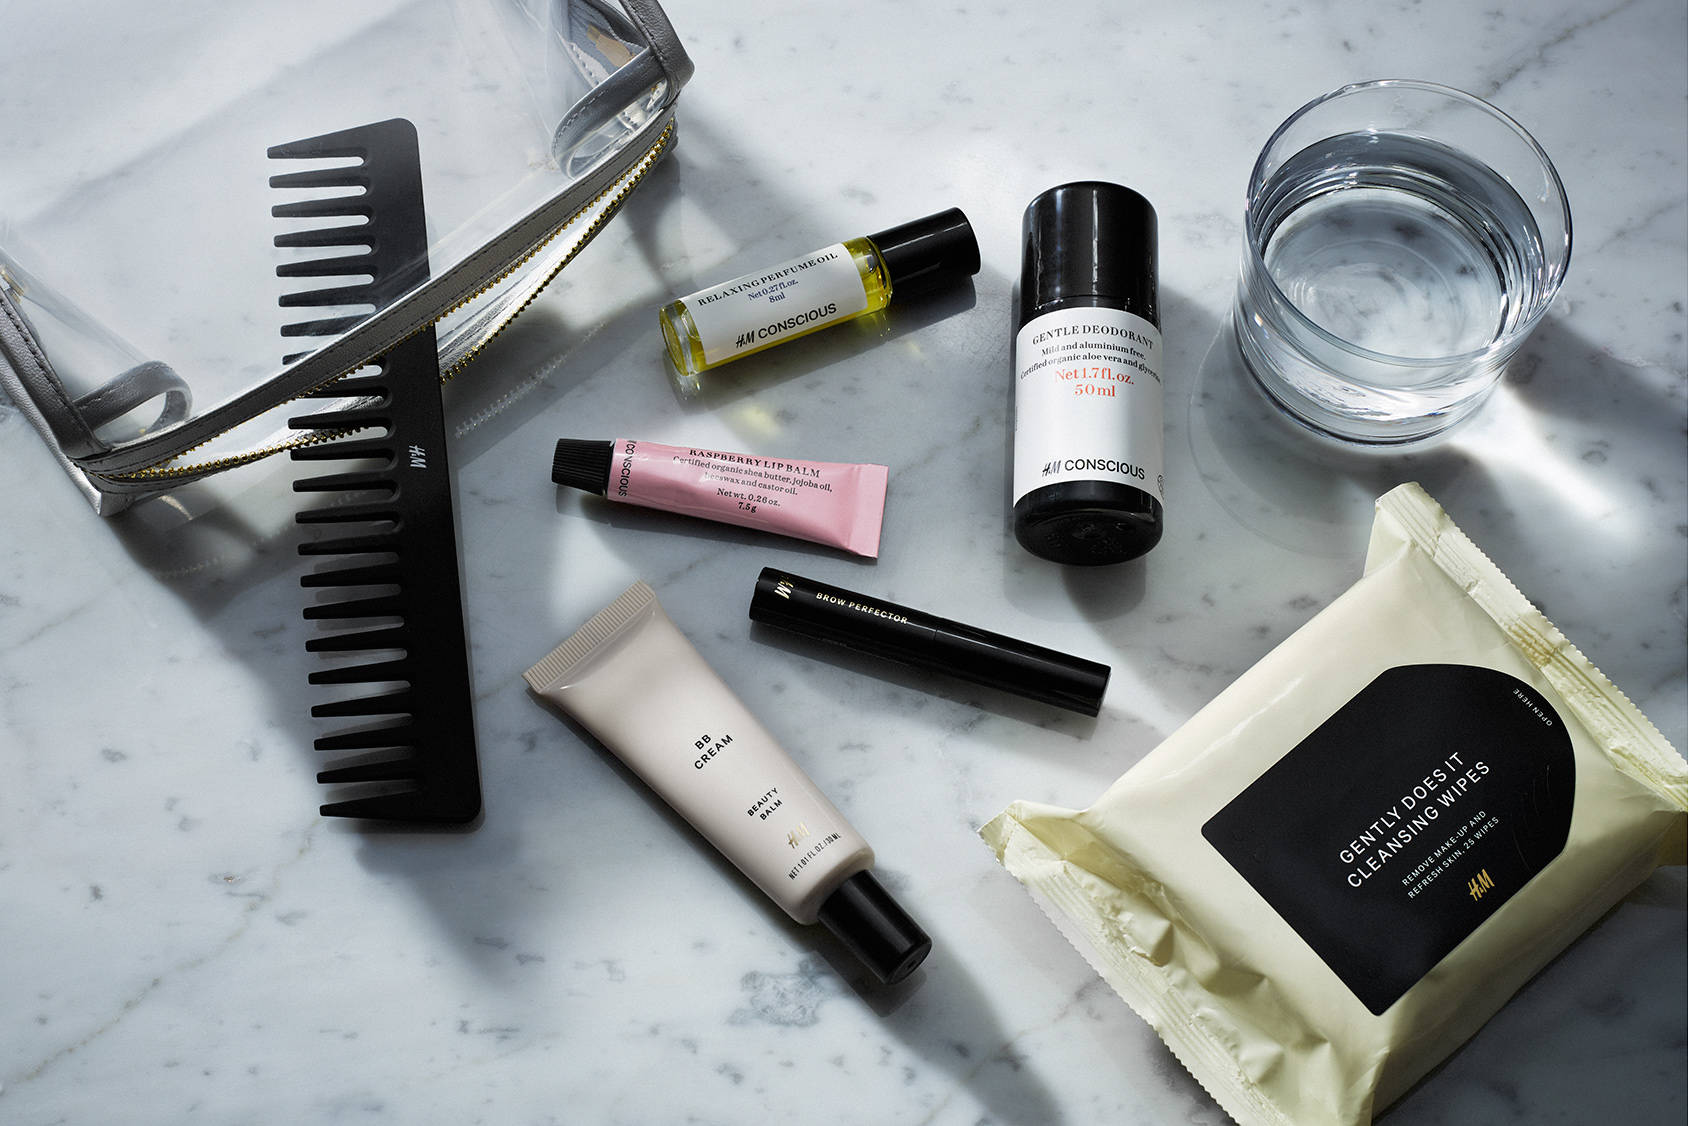 7 IN-FLIGHT BEAUTY ESSENTIALS WE NEVER TRAVEL WITHOUT